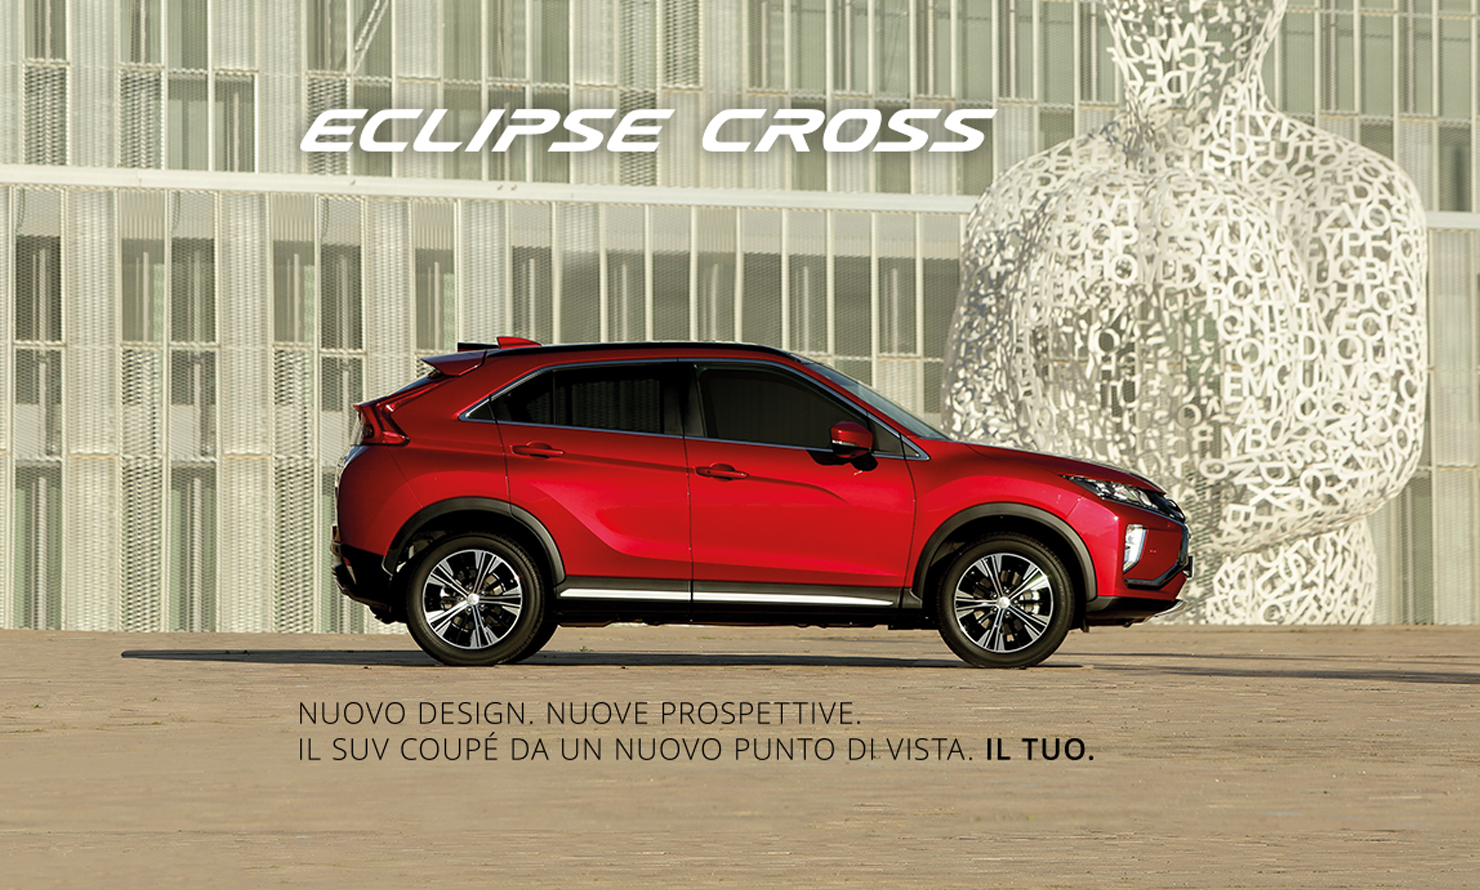 https://kubelibre.com/uploads/Slider-work-tutti-clienti/mitsubishi-eclipse-cross-design-week-1.jpg